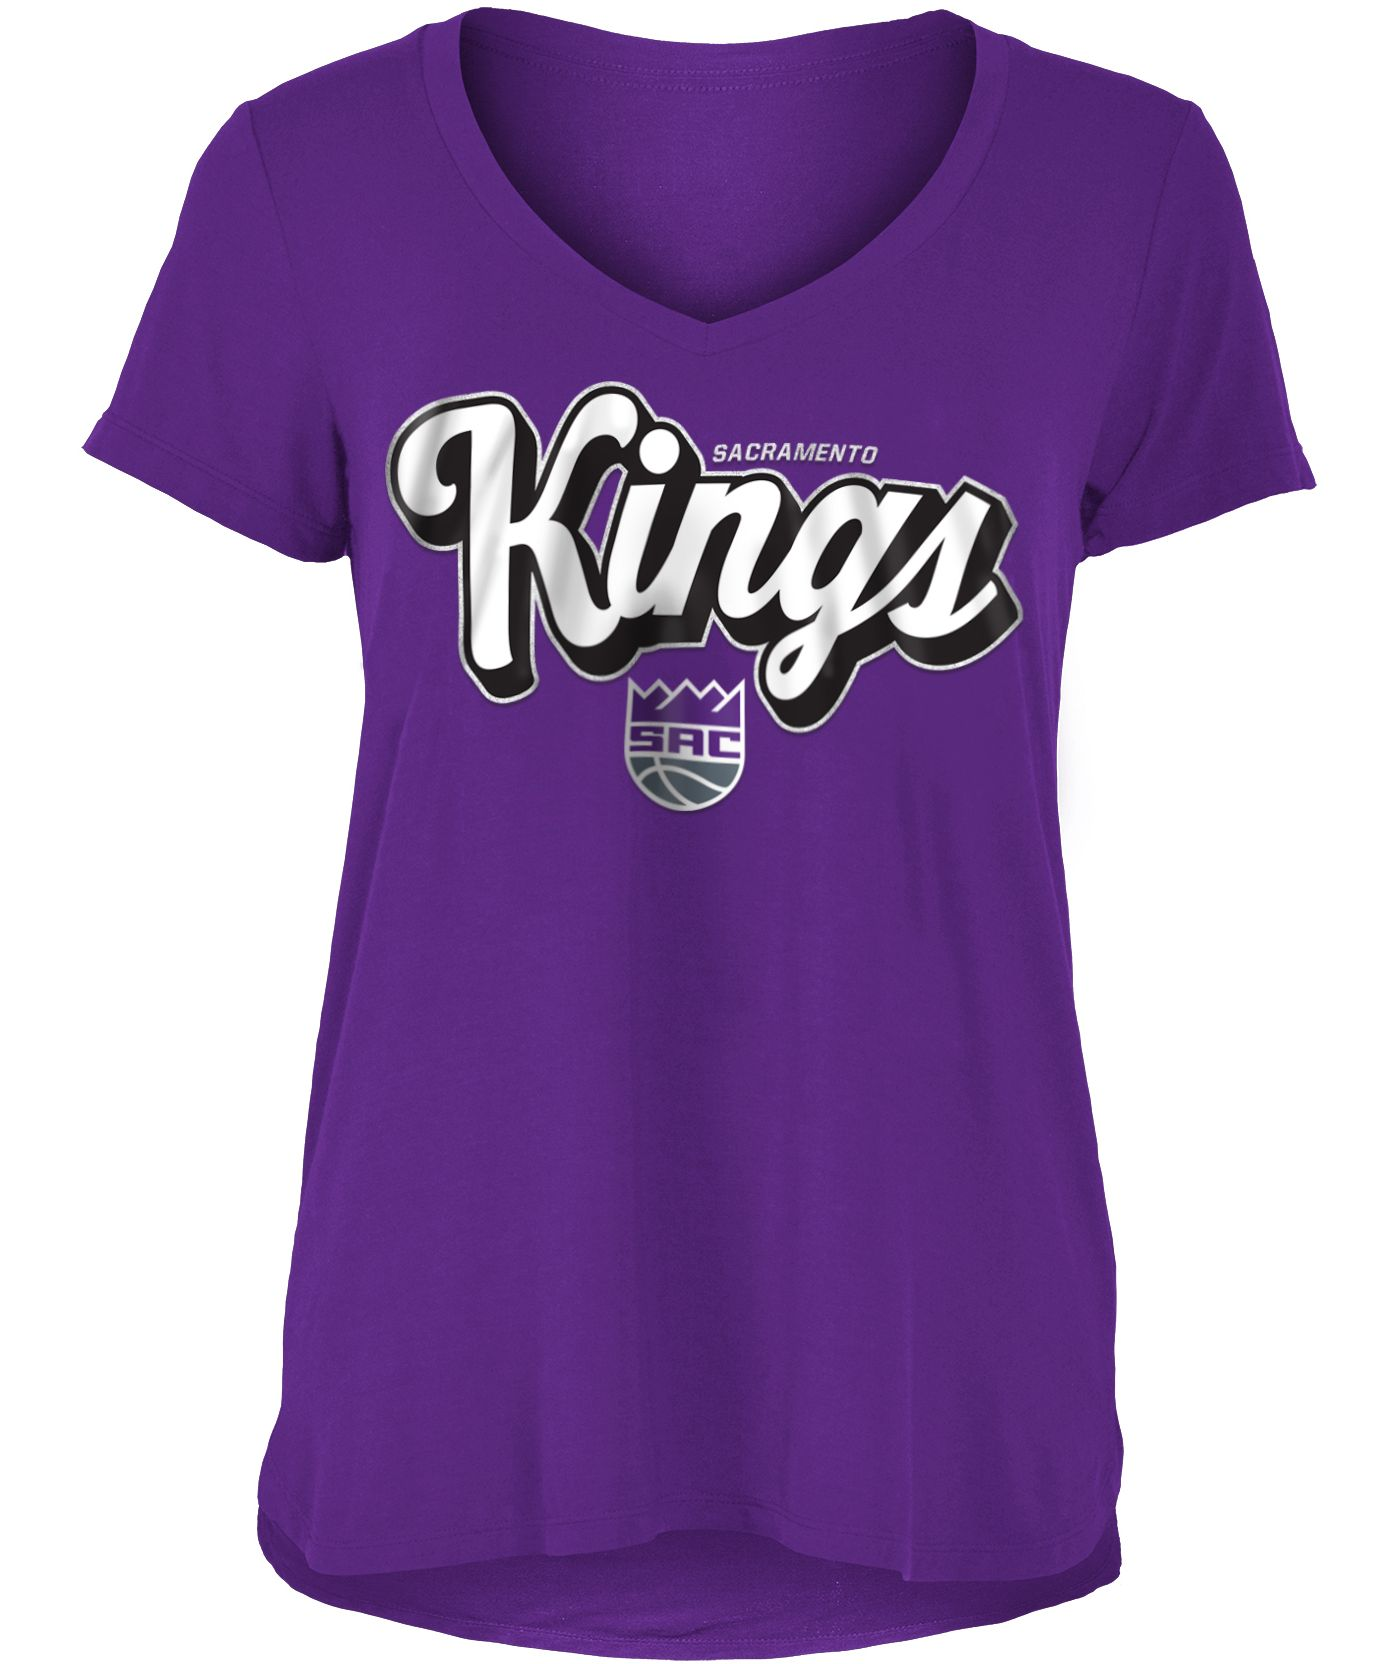 New Era Women's Sacramento Kings V-Neck T-Shirt